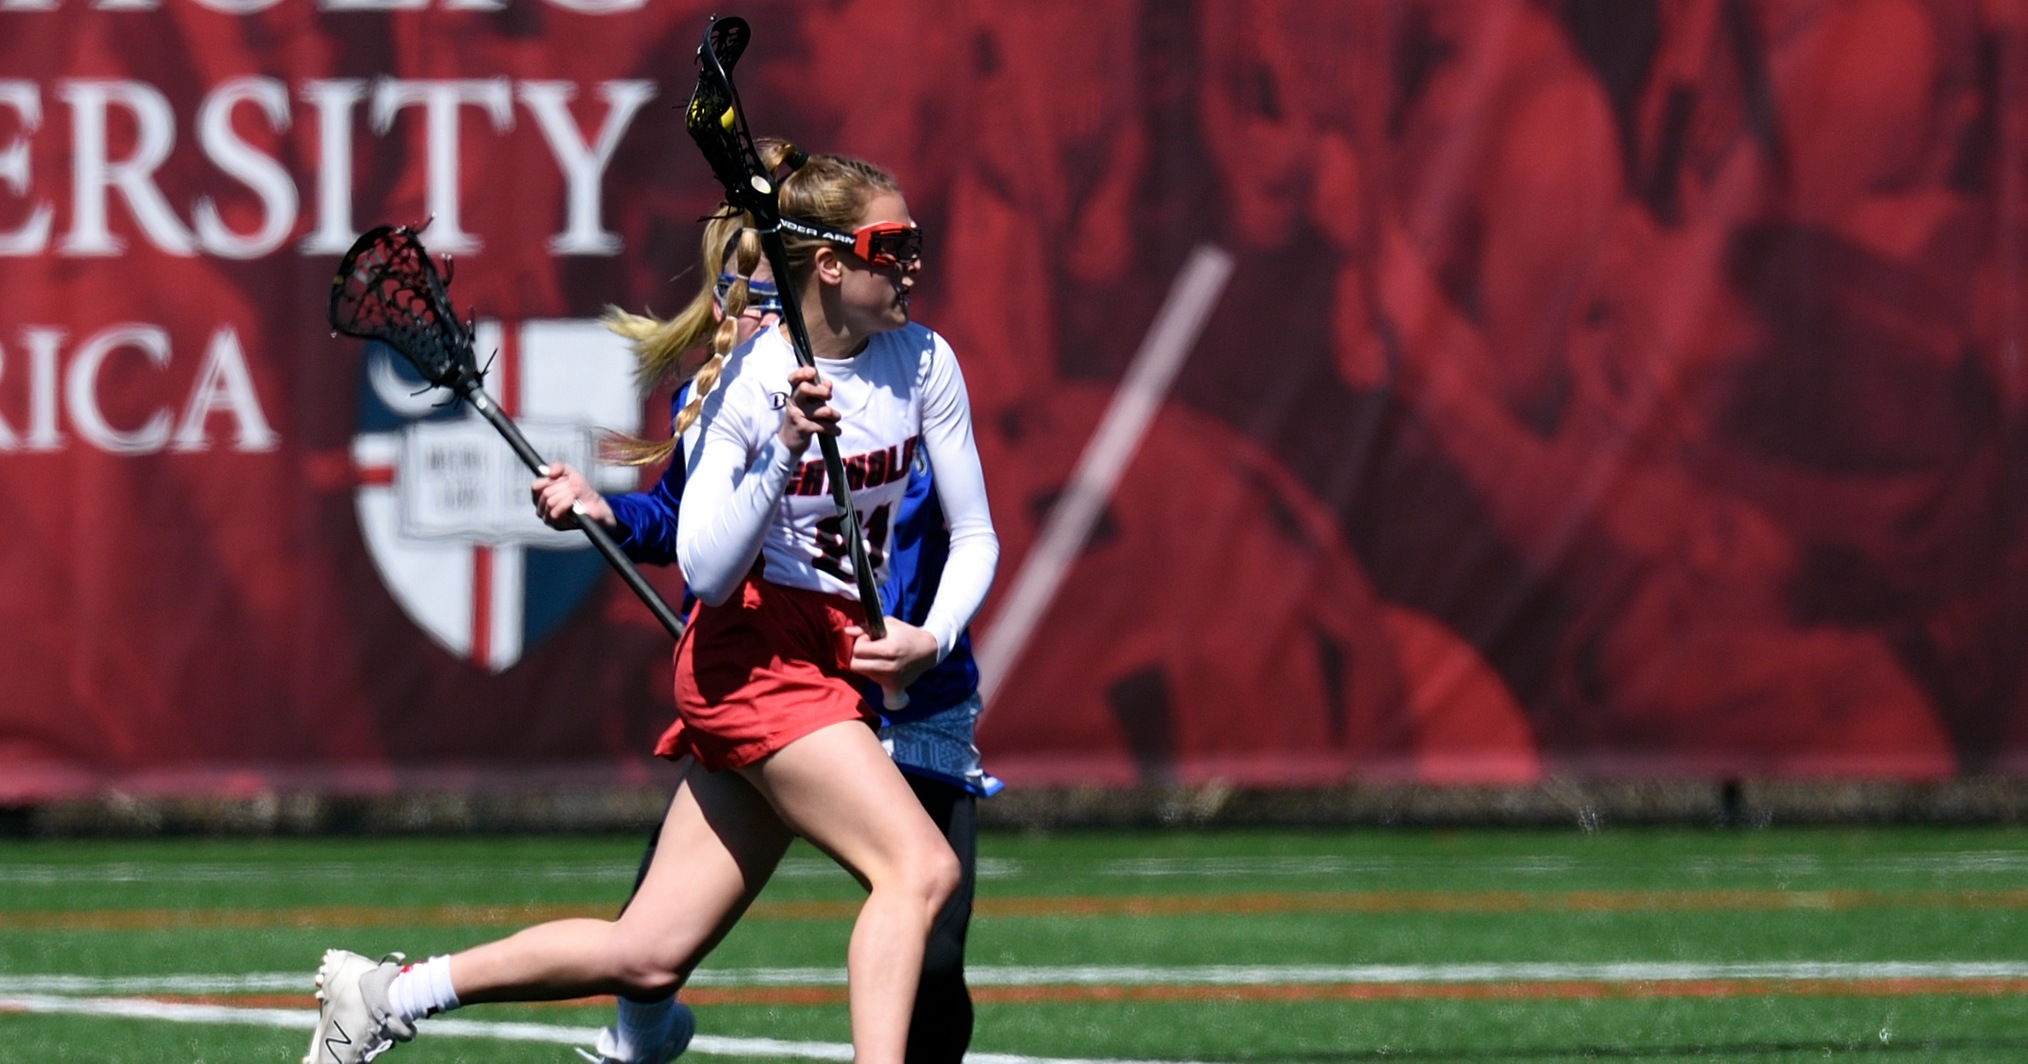 Cardinals Secure Top Seed With 20-3 Win Over Susquehanna